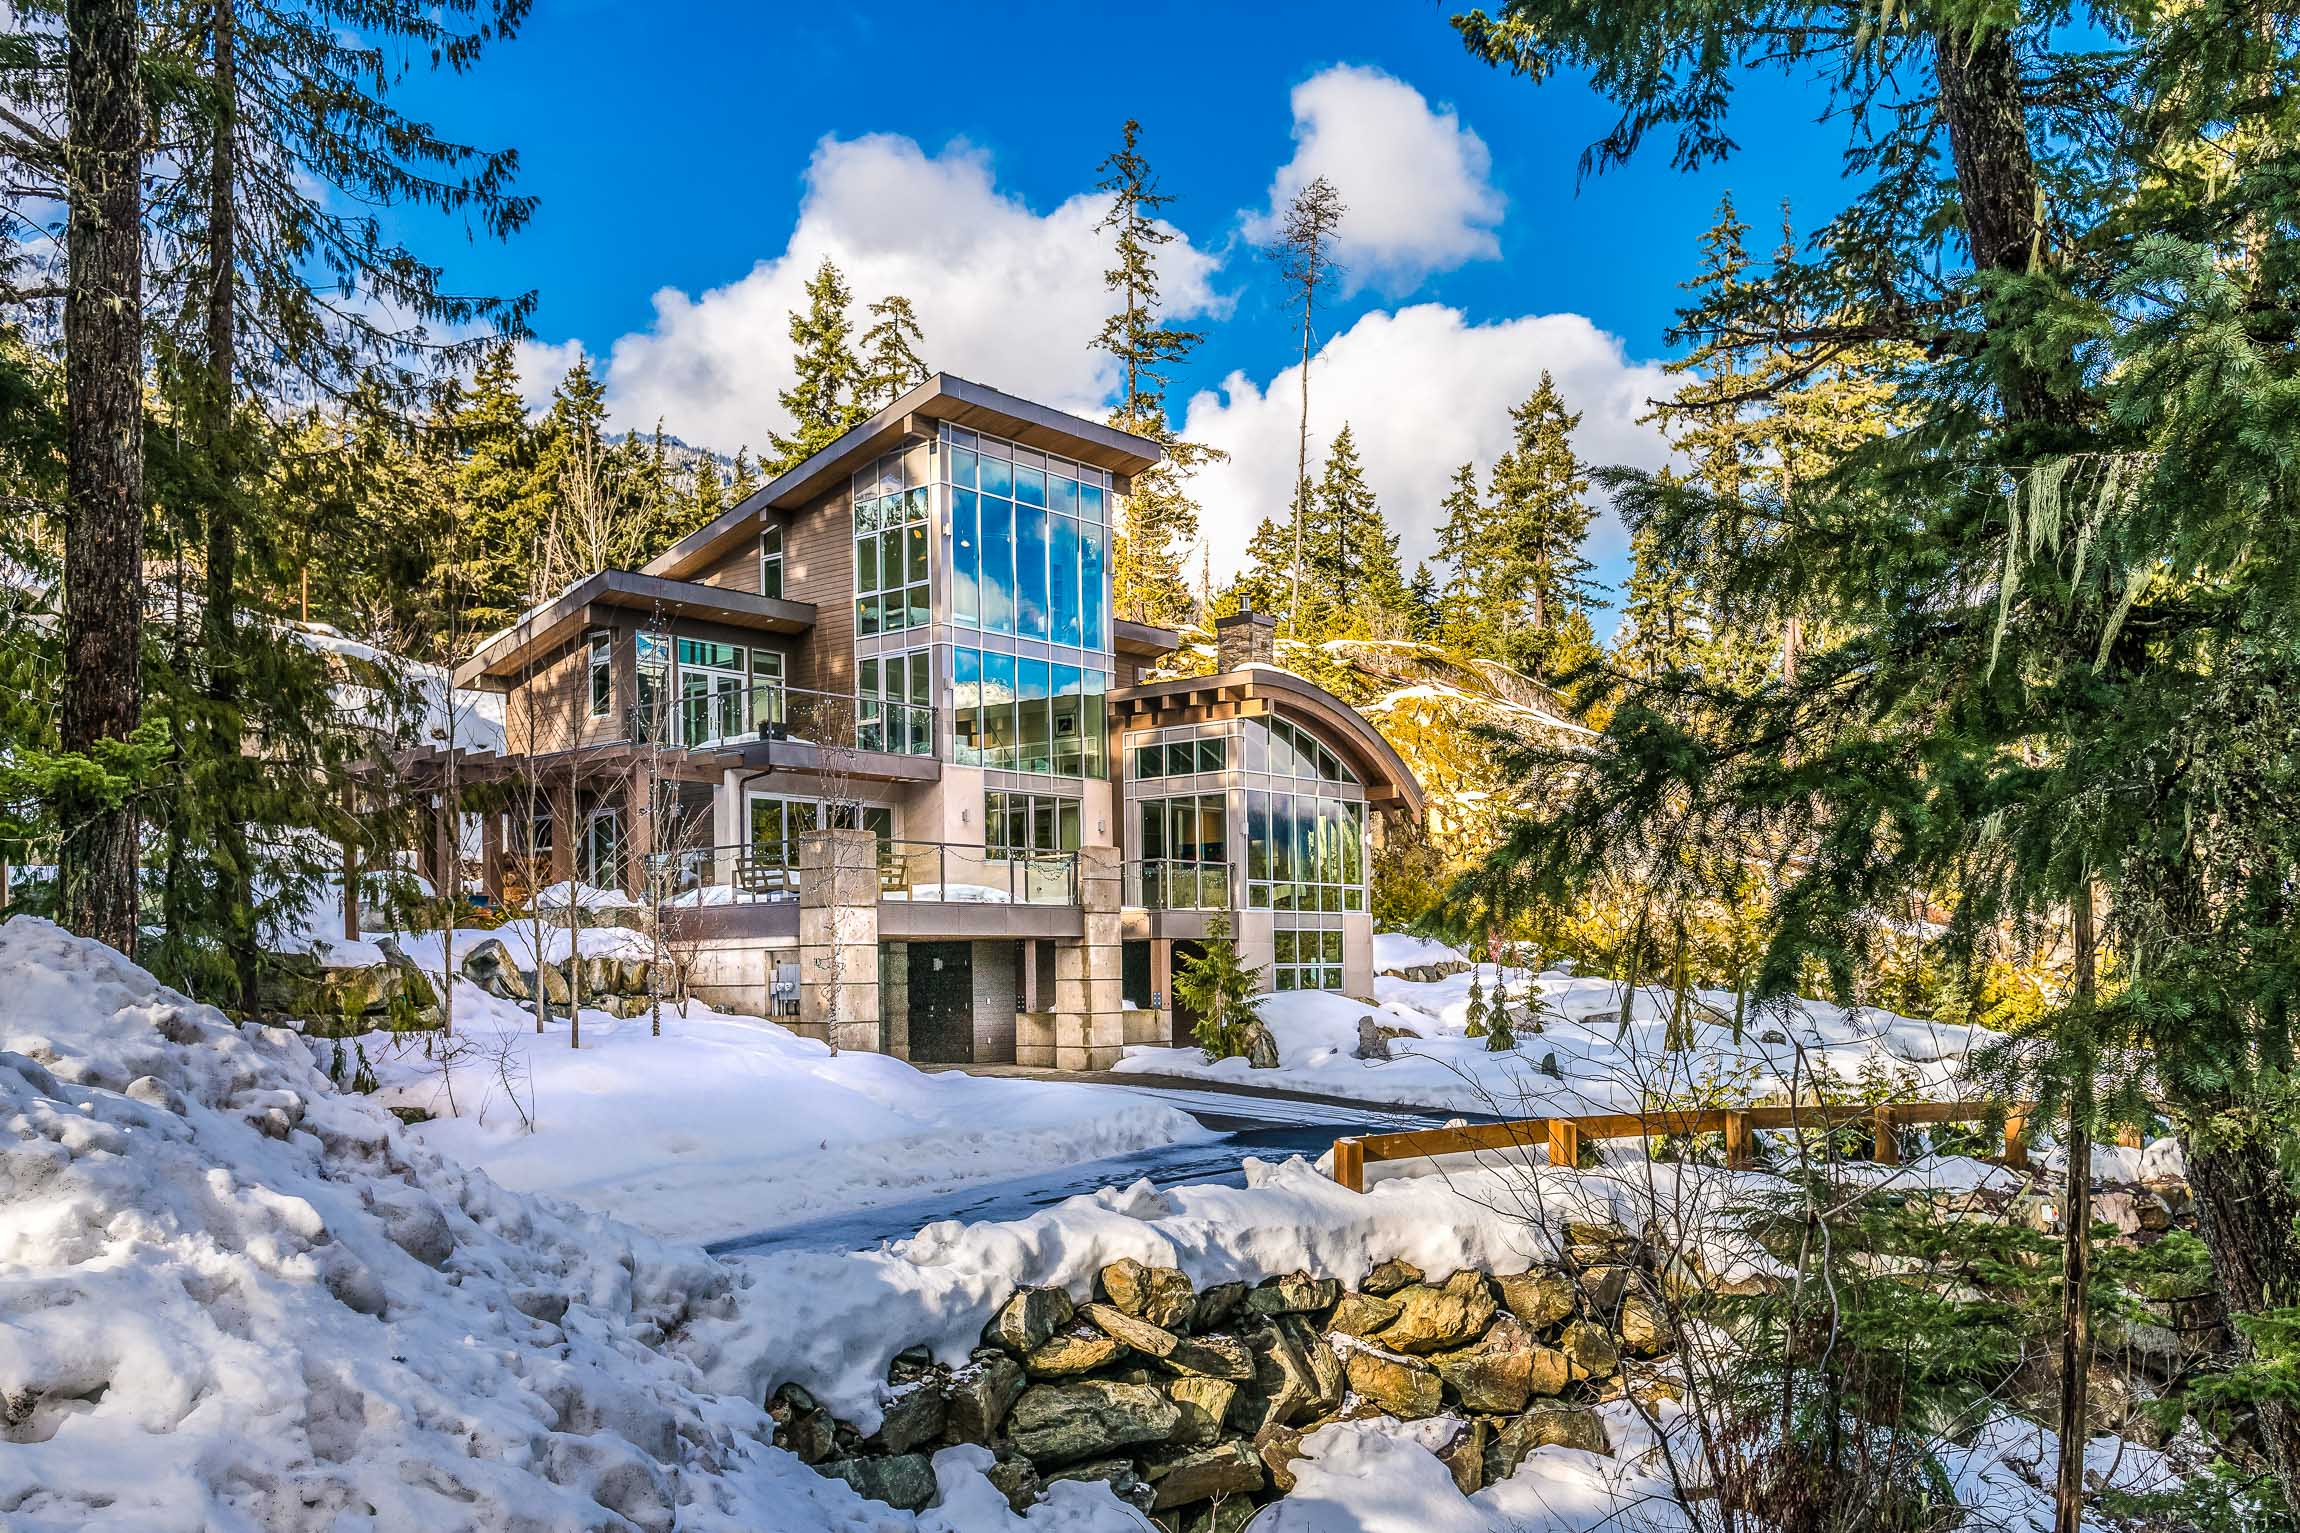 Winter Escapes: Planning a multiple family vacation in Whistler